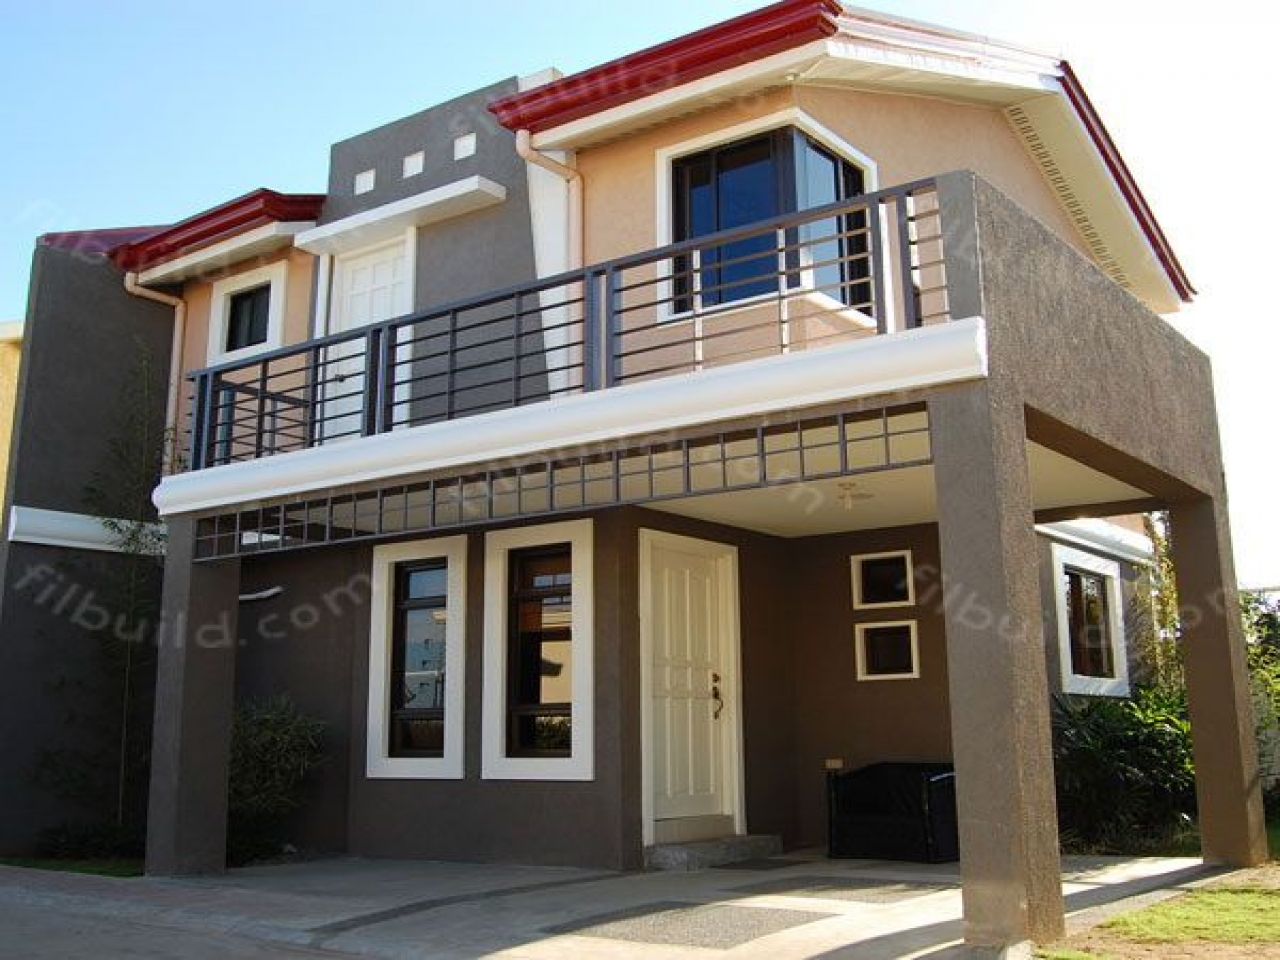 3 Bedroom House With Garage 3 Bedroom House Design